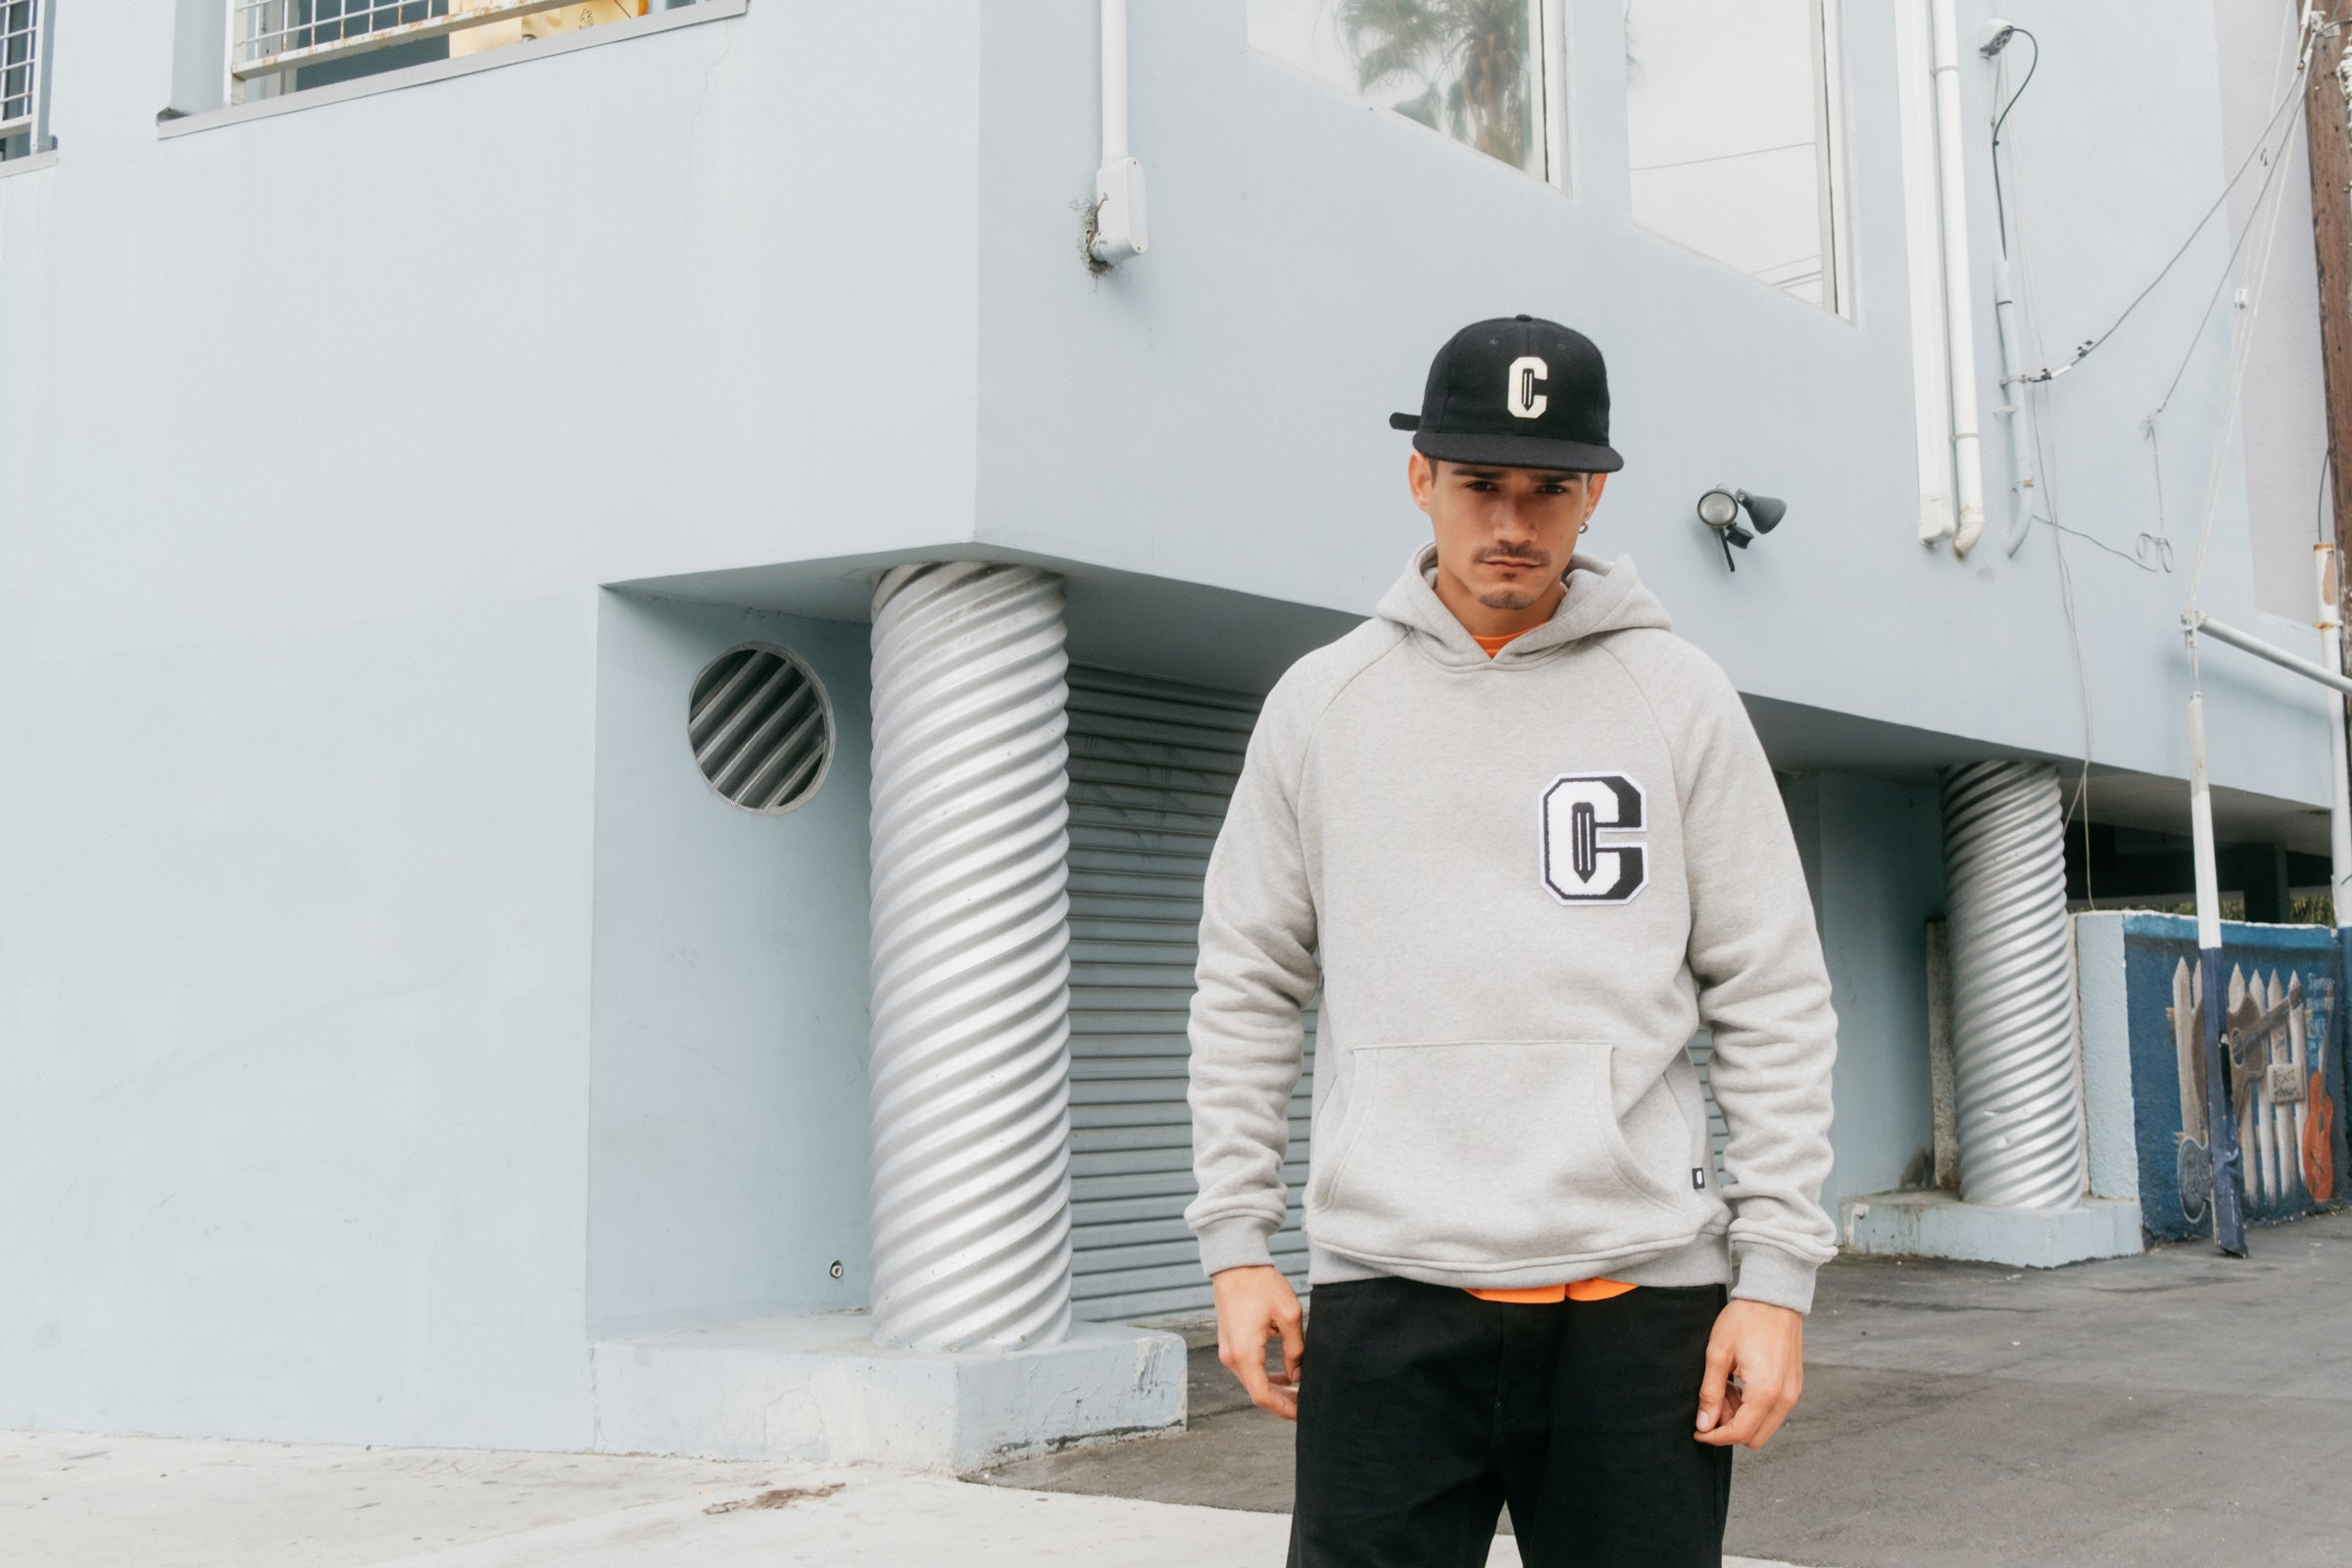 Model wearing the Varsity C Hoodie in grey and the Ebbets Wool C Cap in black and standing in front of a building.